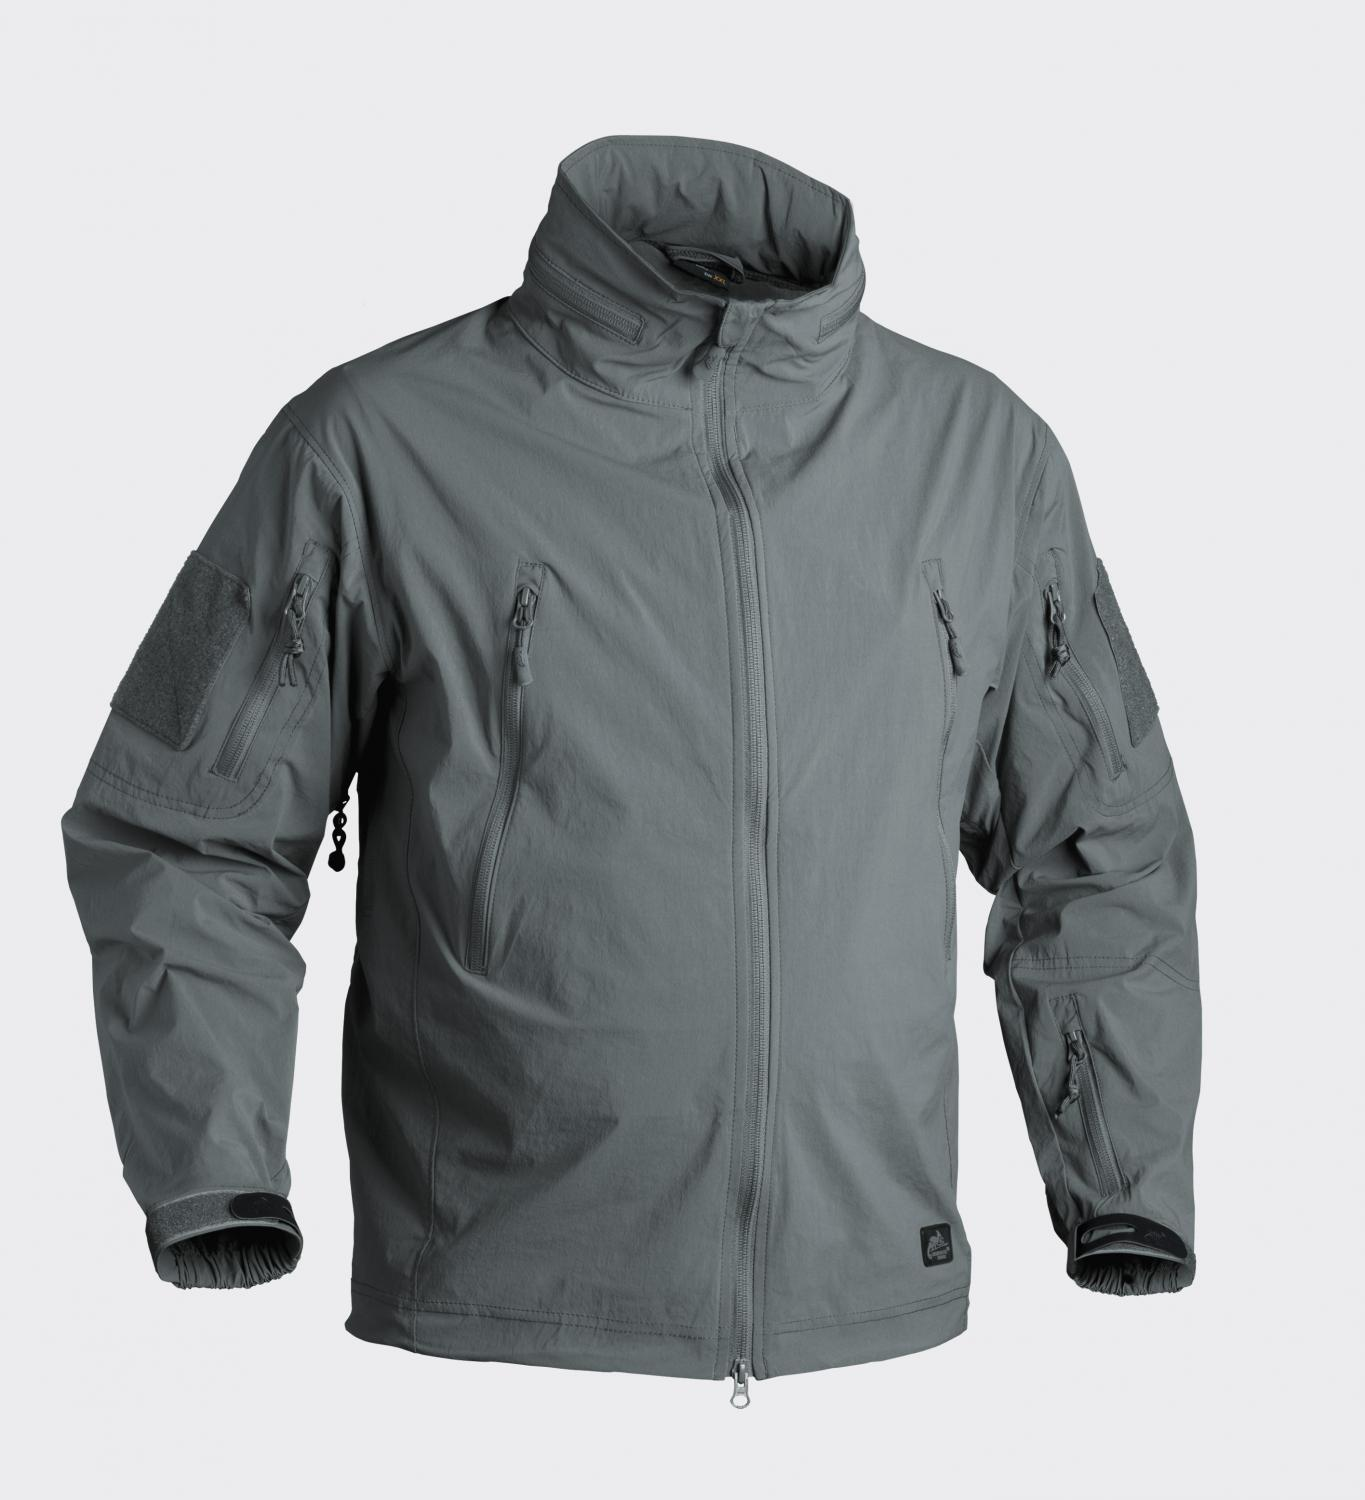 TROOPER - SoftShell Alpha Green